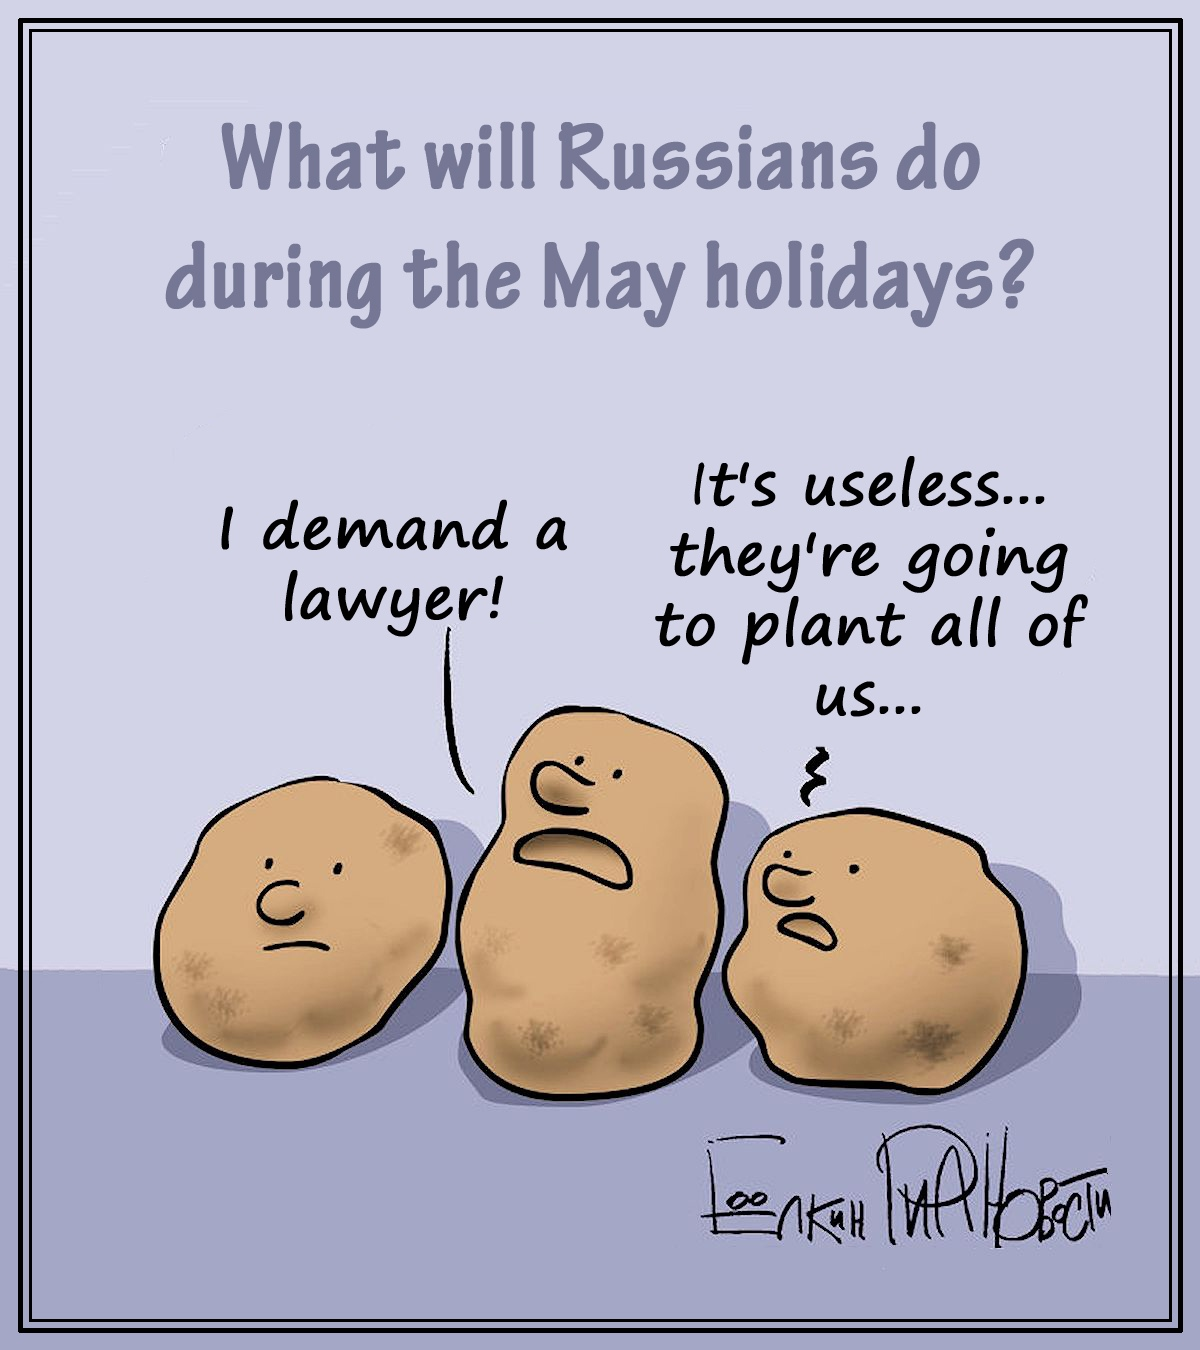 00 Sergei Yolkin. It's May! To the Backyard! We Gotta Plant the Potatoes! 2013